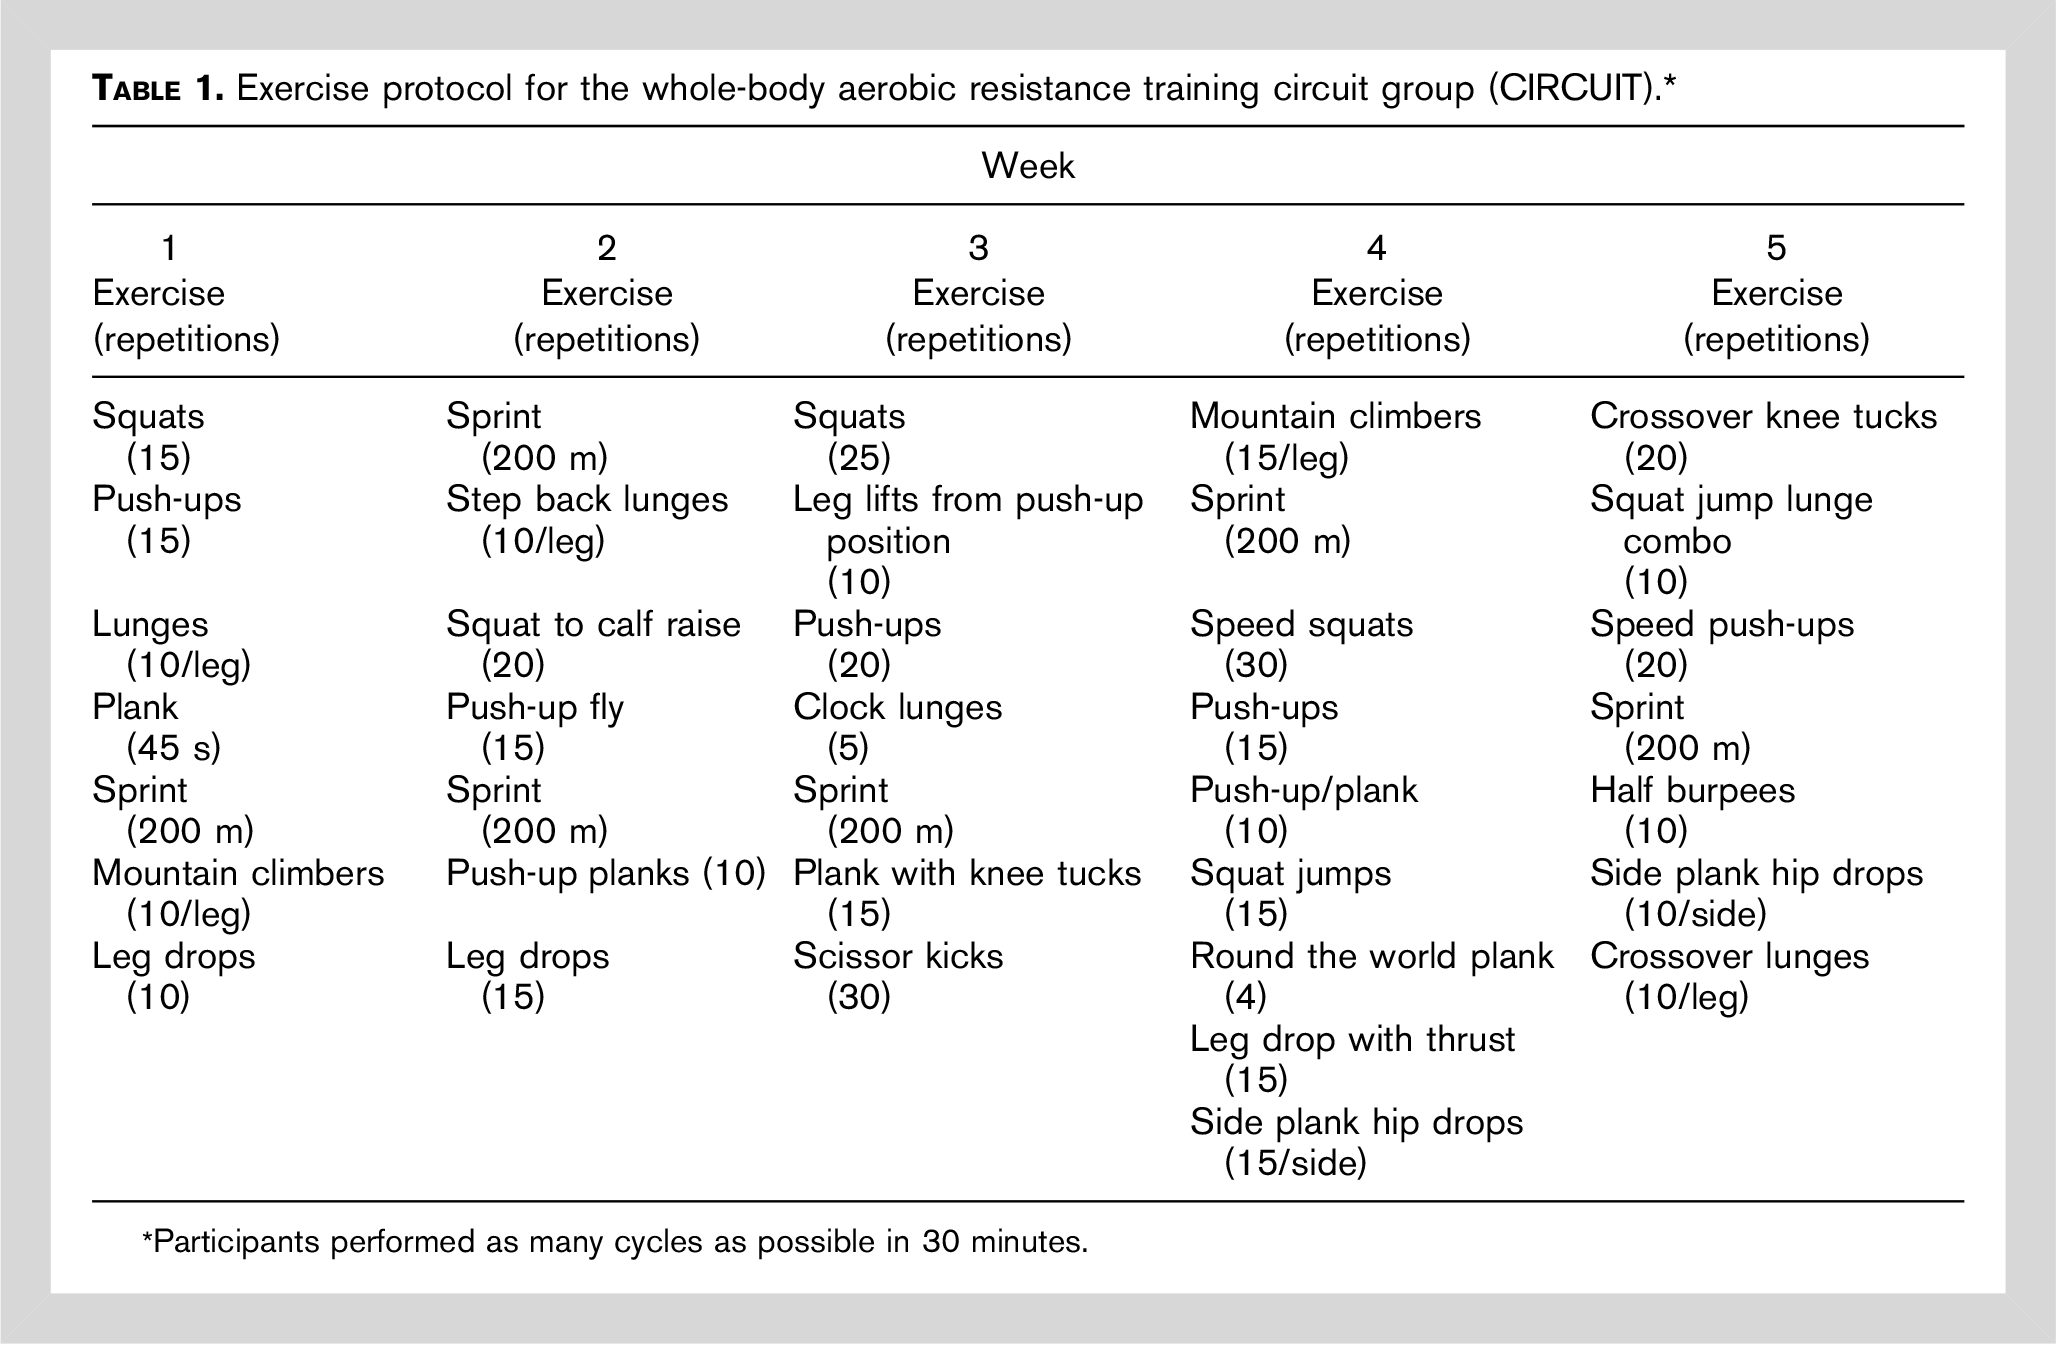 protocol for whole-body aerobic resistance exercise circuit